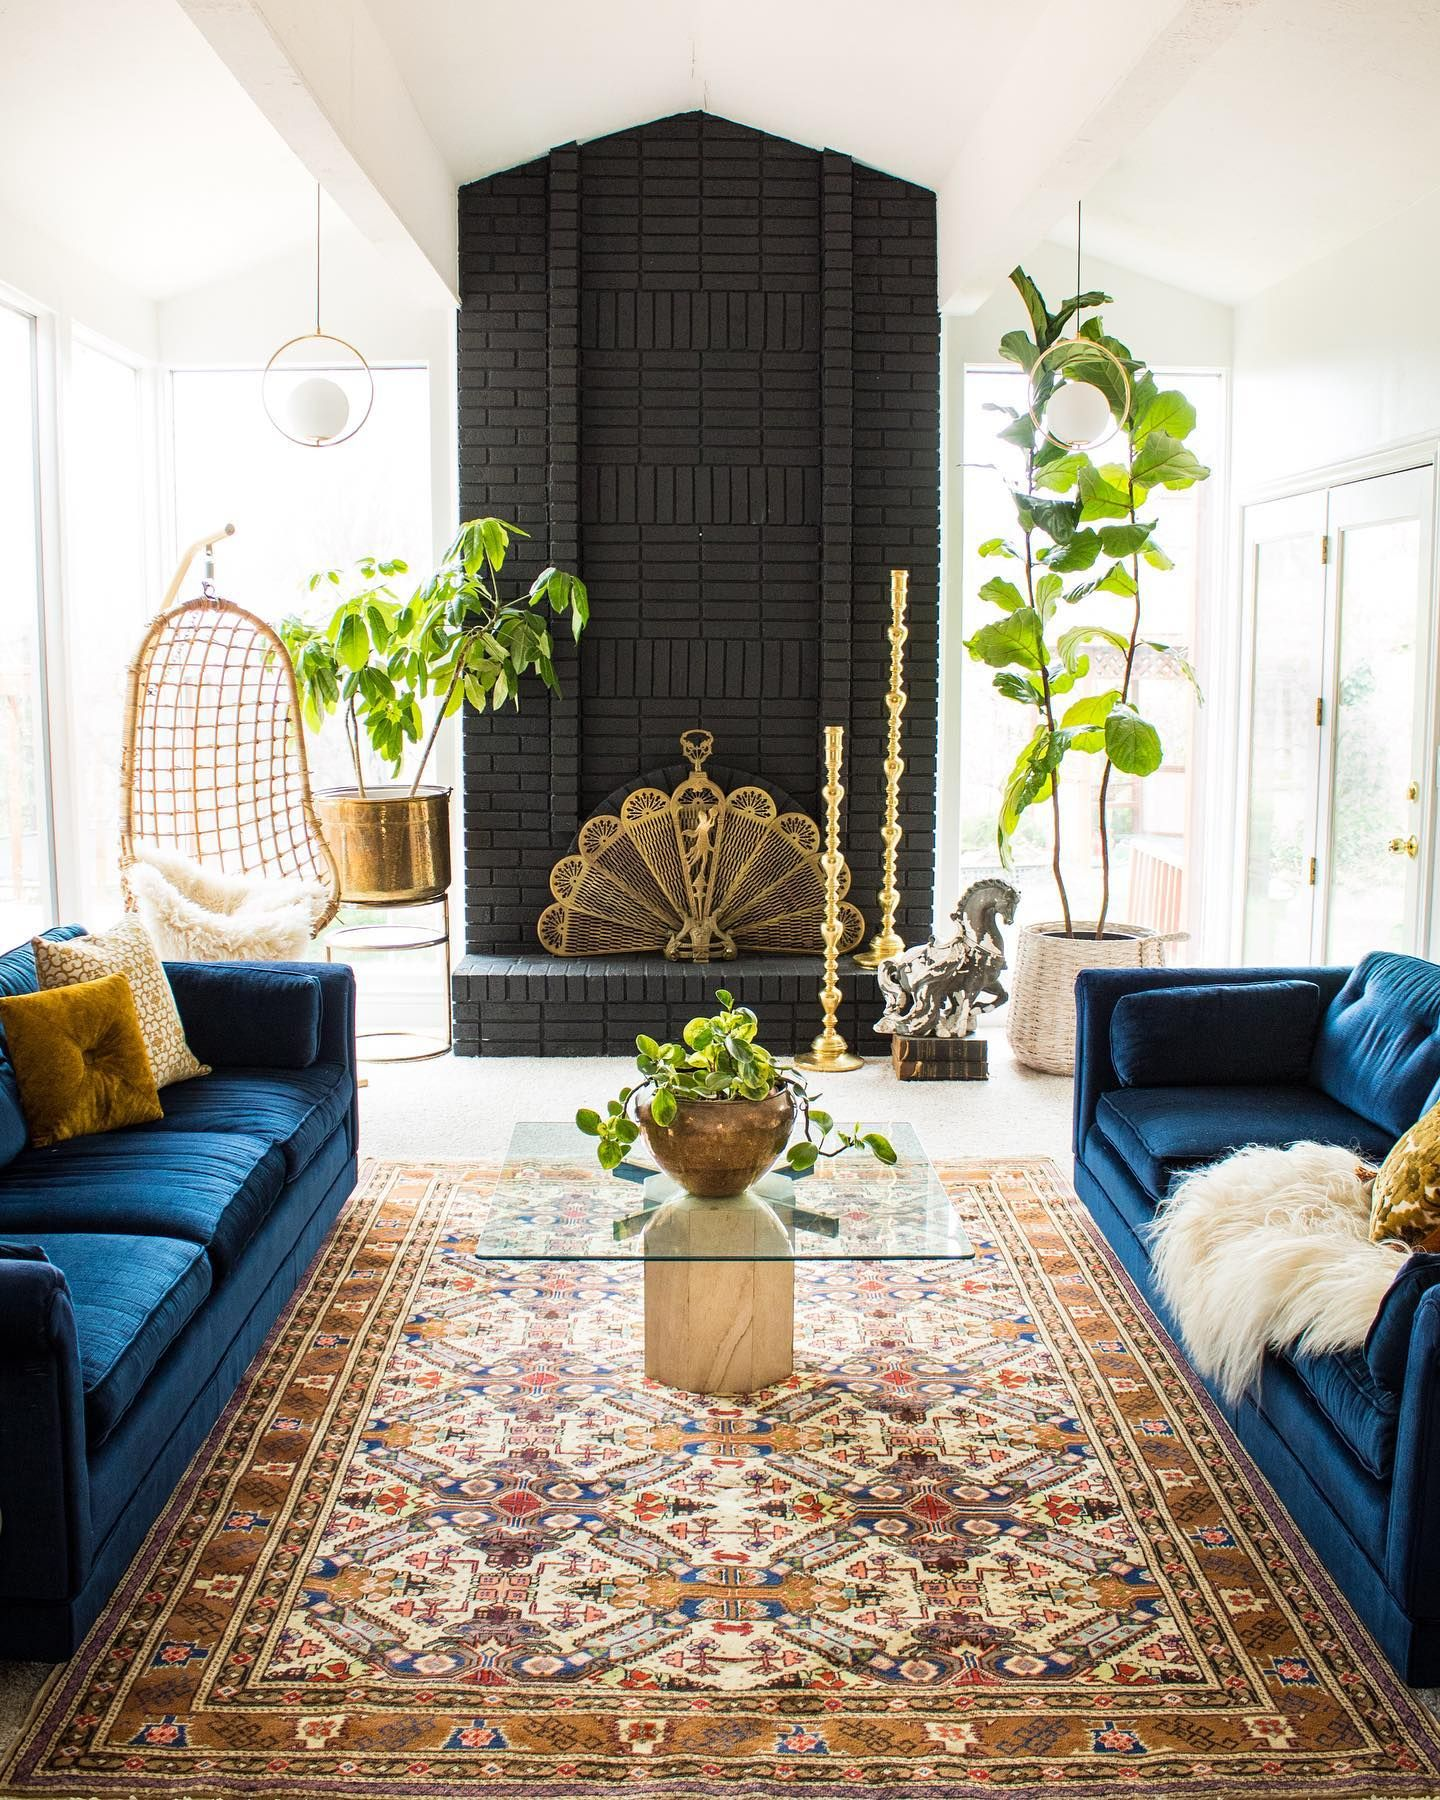 Boho Eclectic Living Room Using A Rug In A Space Totally Transforms It Livingroominspo Eclec Blue Couch Living Room Rugs In Living Room Luxe Living Room